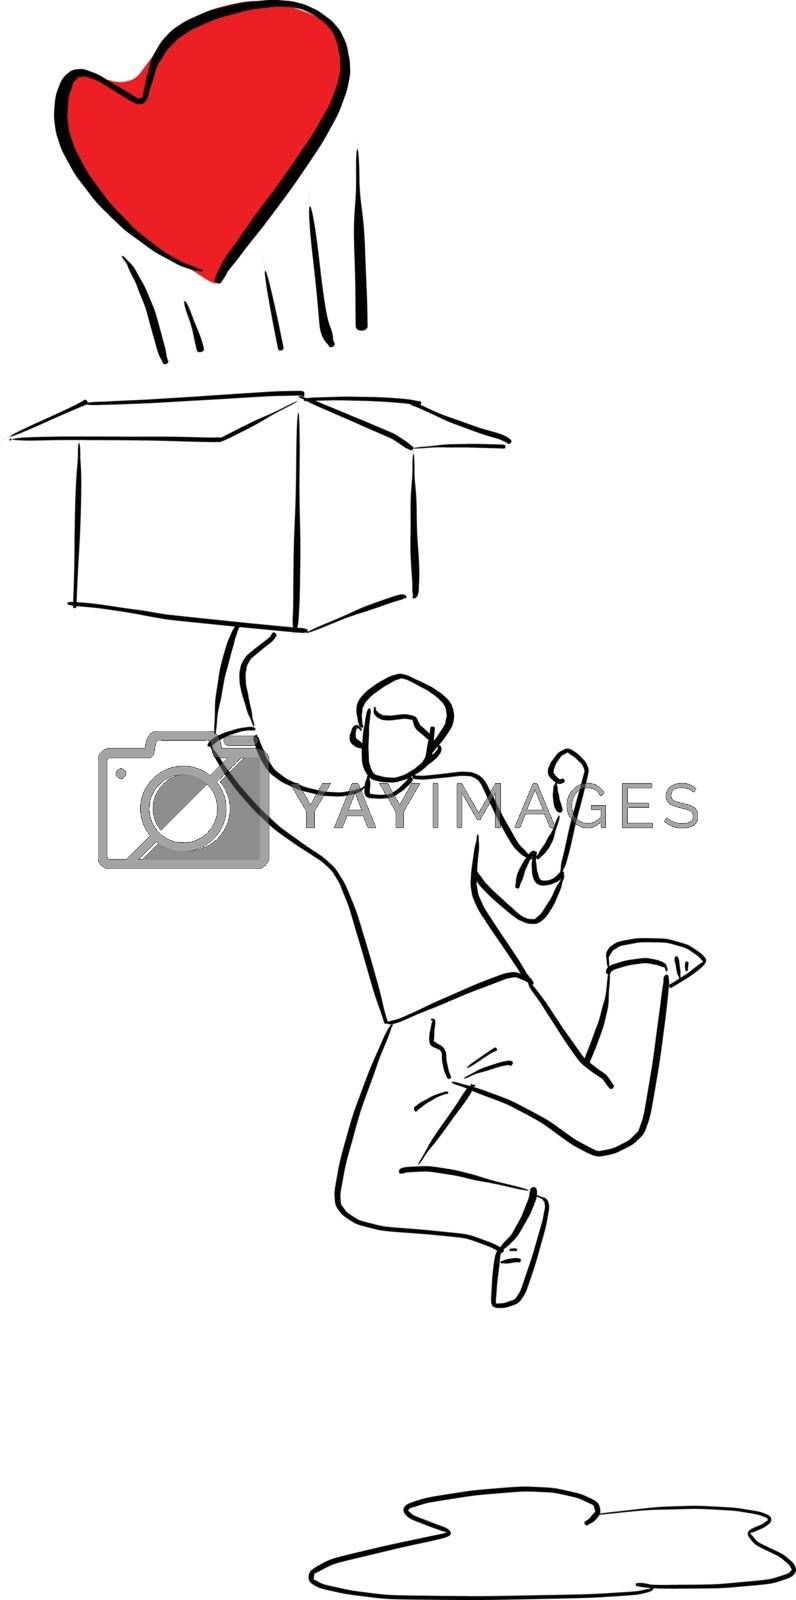 man jumping to the box with red heart vector illustration sketch doodle hand drawn with black lines isolated on white background